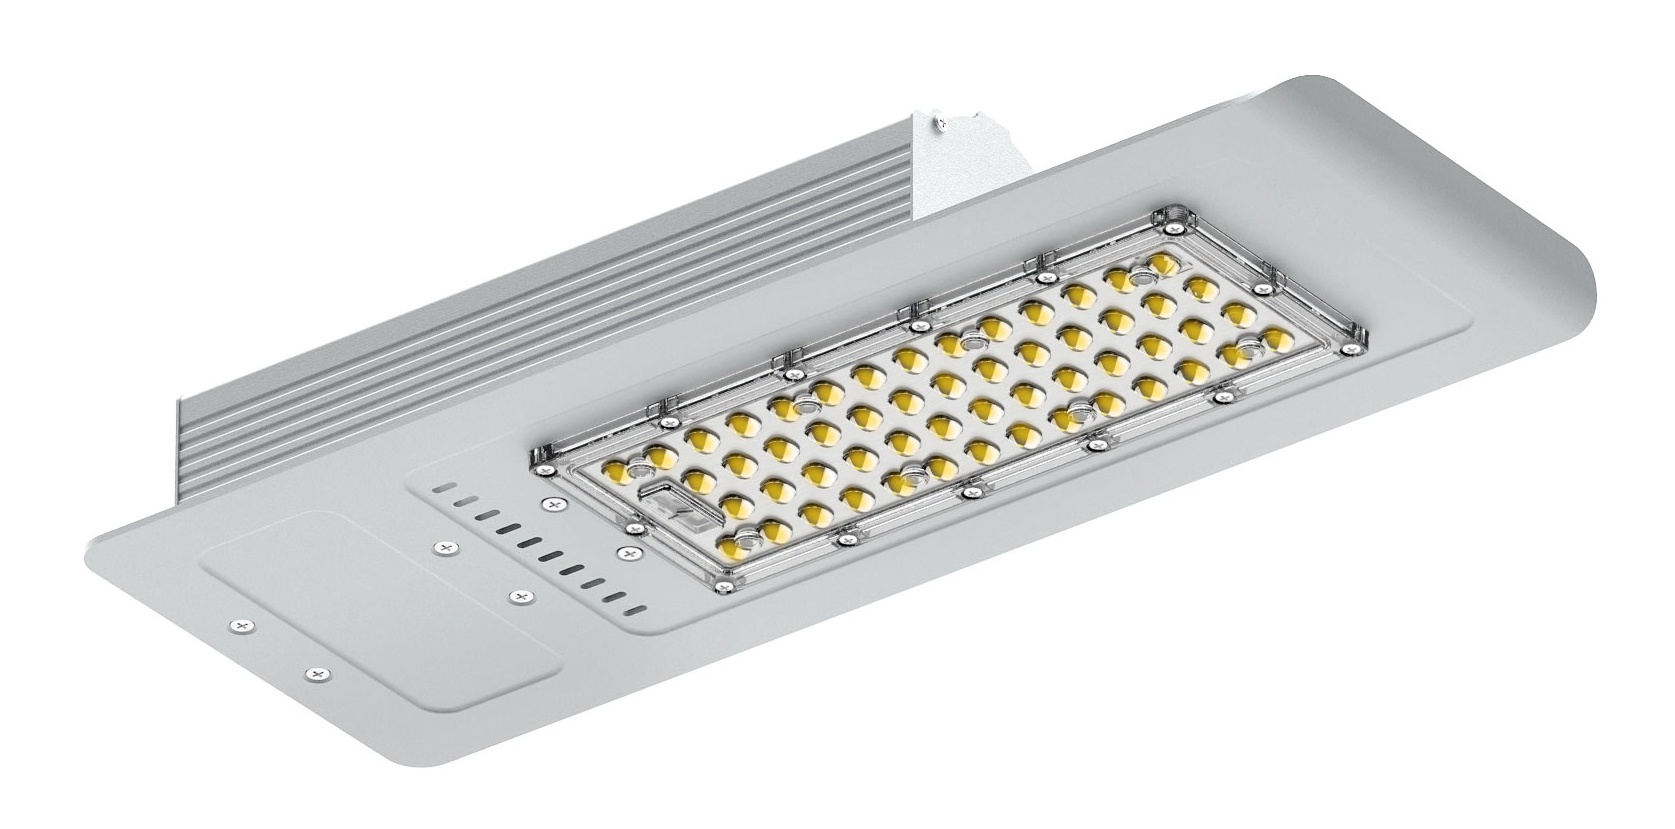 Lamparas Led Para Patios Lampara Led Tipo Street Light Lamparas Led Suminae Led